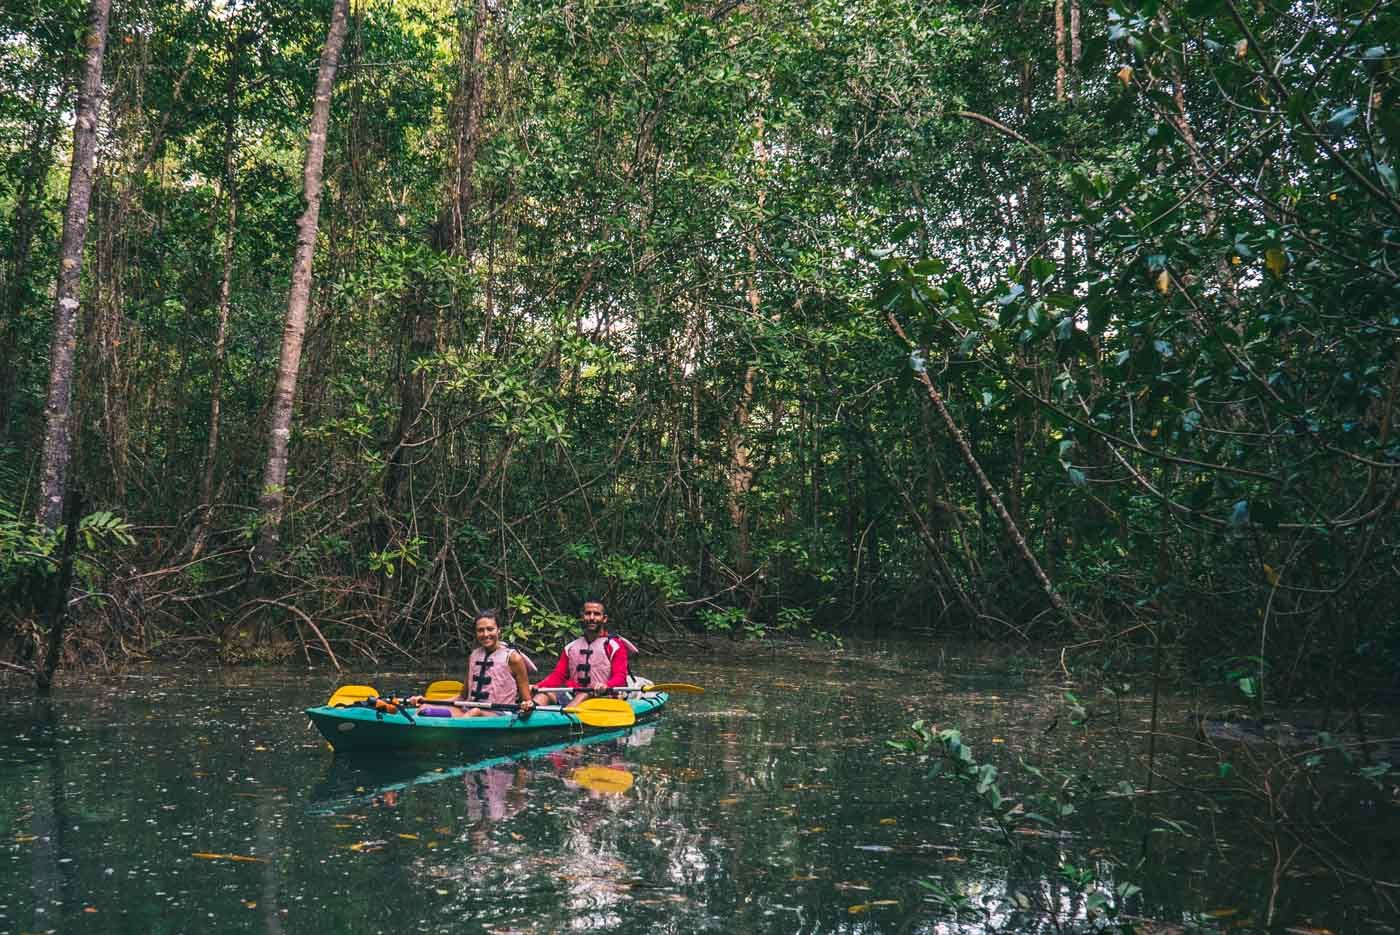 Costa Rica itinerary: Kayaking in the mangroves of Osa Peninsula